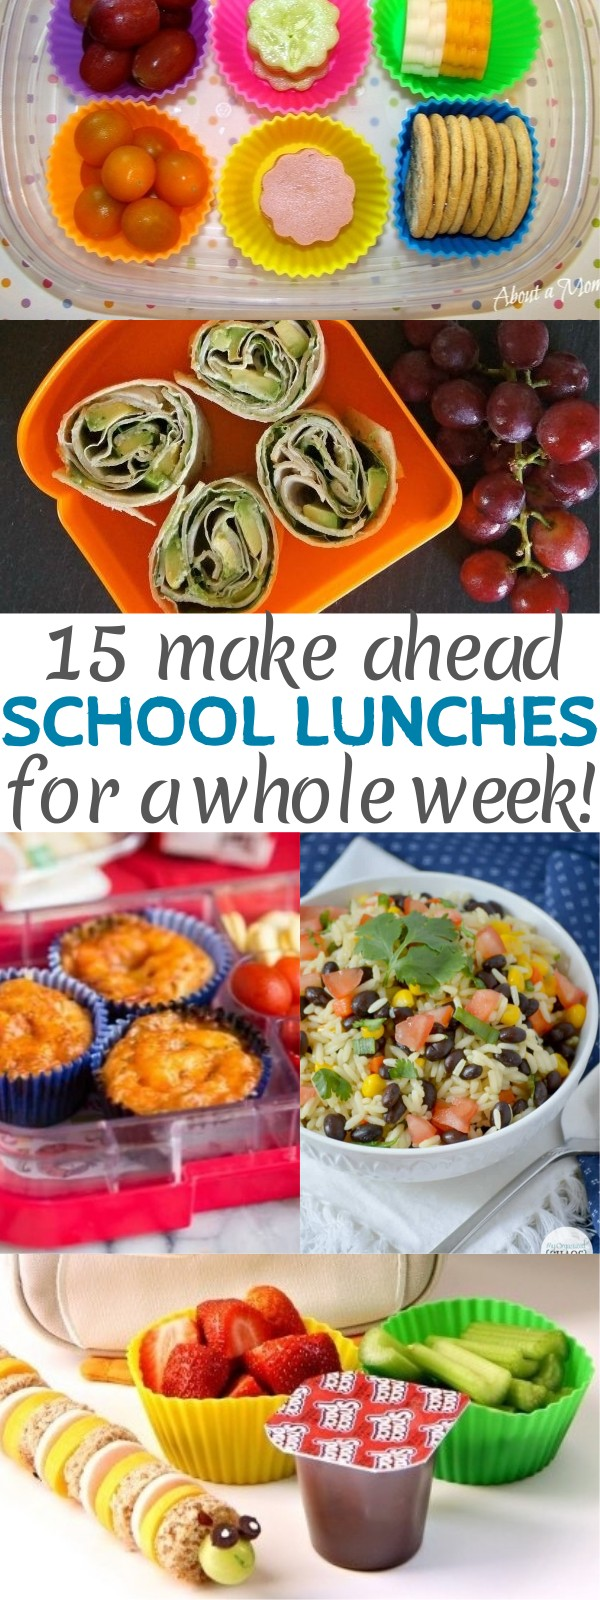 15 Easy Kids Make Ahead Lunches For School That Will Last The Whole Week - pre made school lunches | lunch prep for a week | kid friendly school lunch ideas | pre made lunches for the week | make ahead lunch ideas | honeyandlime.co